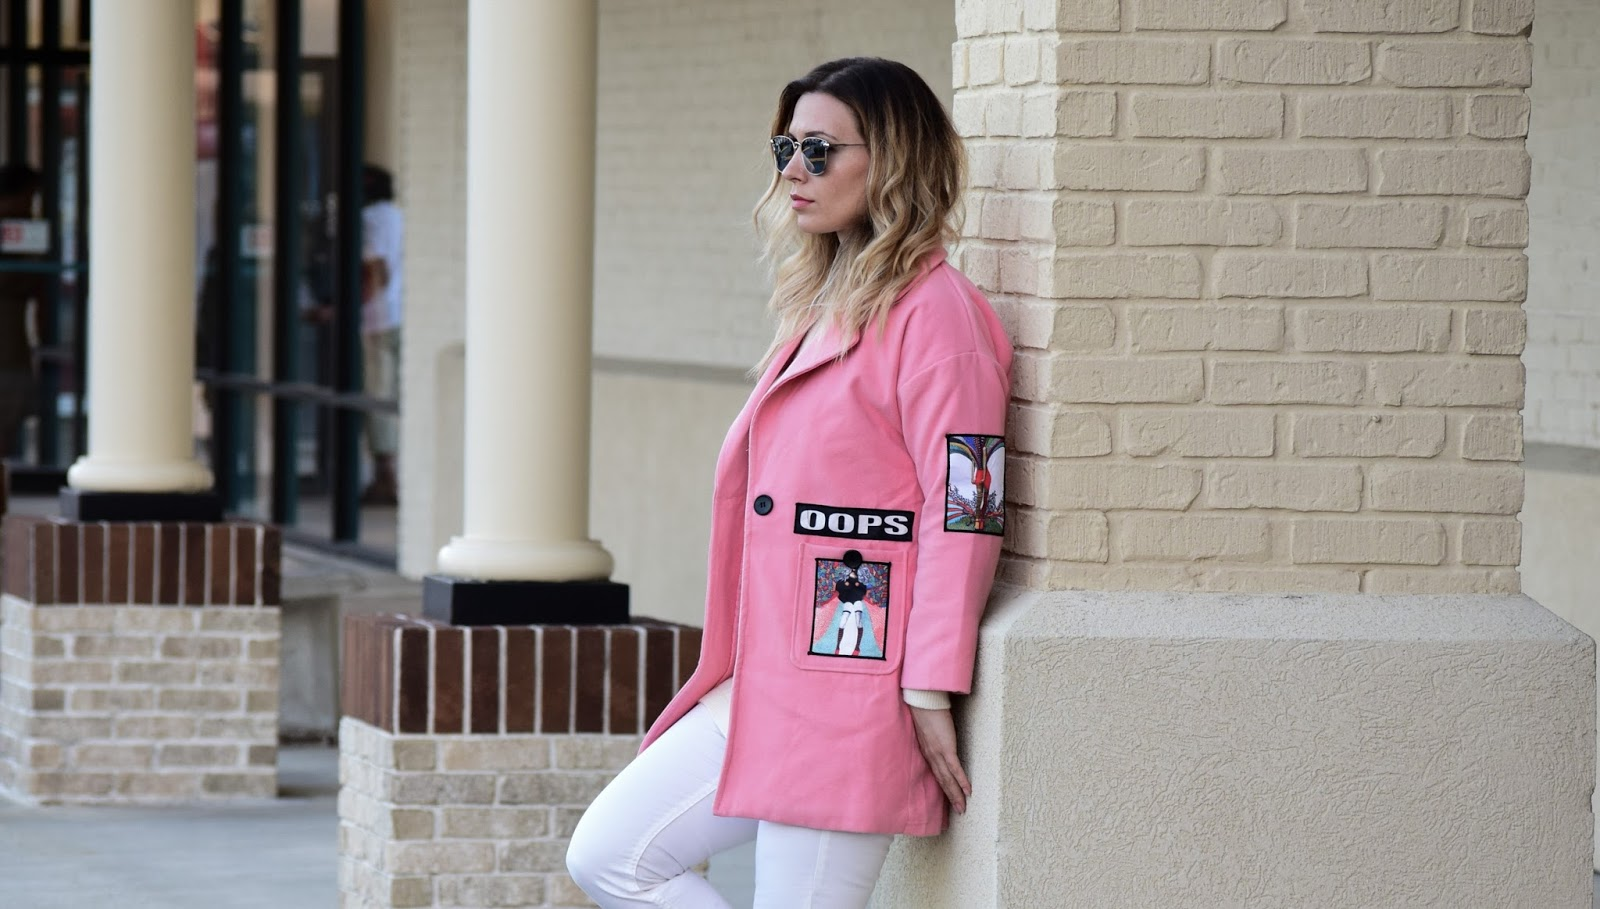 The pink coat is amazing. My favorite part are the unique patches and I  don't mind that the color is a bit different than pictured on their website.